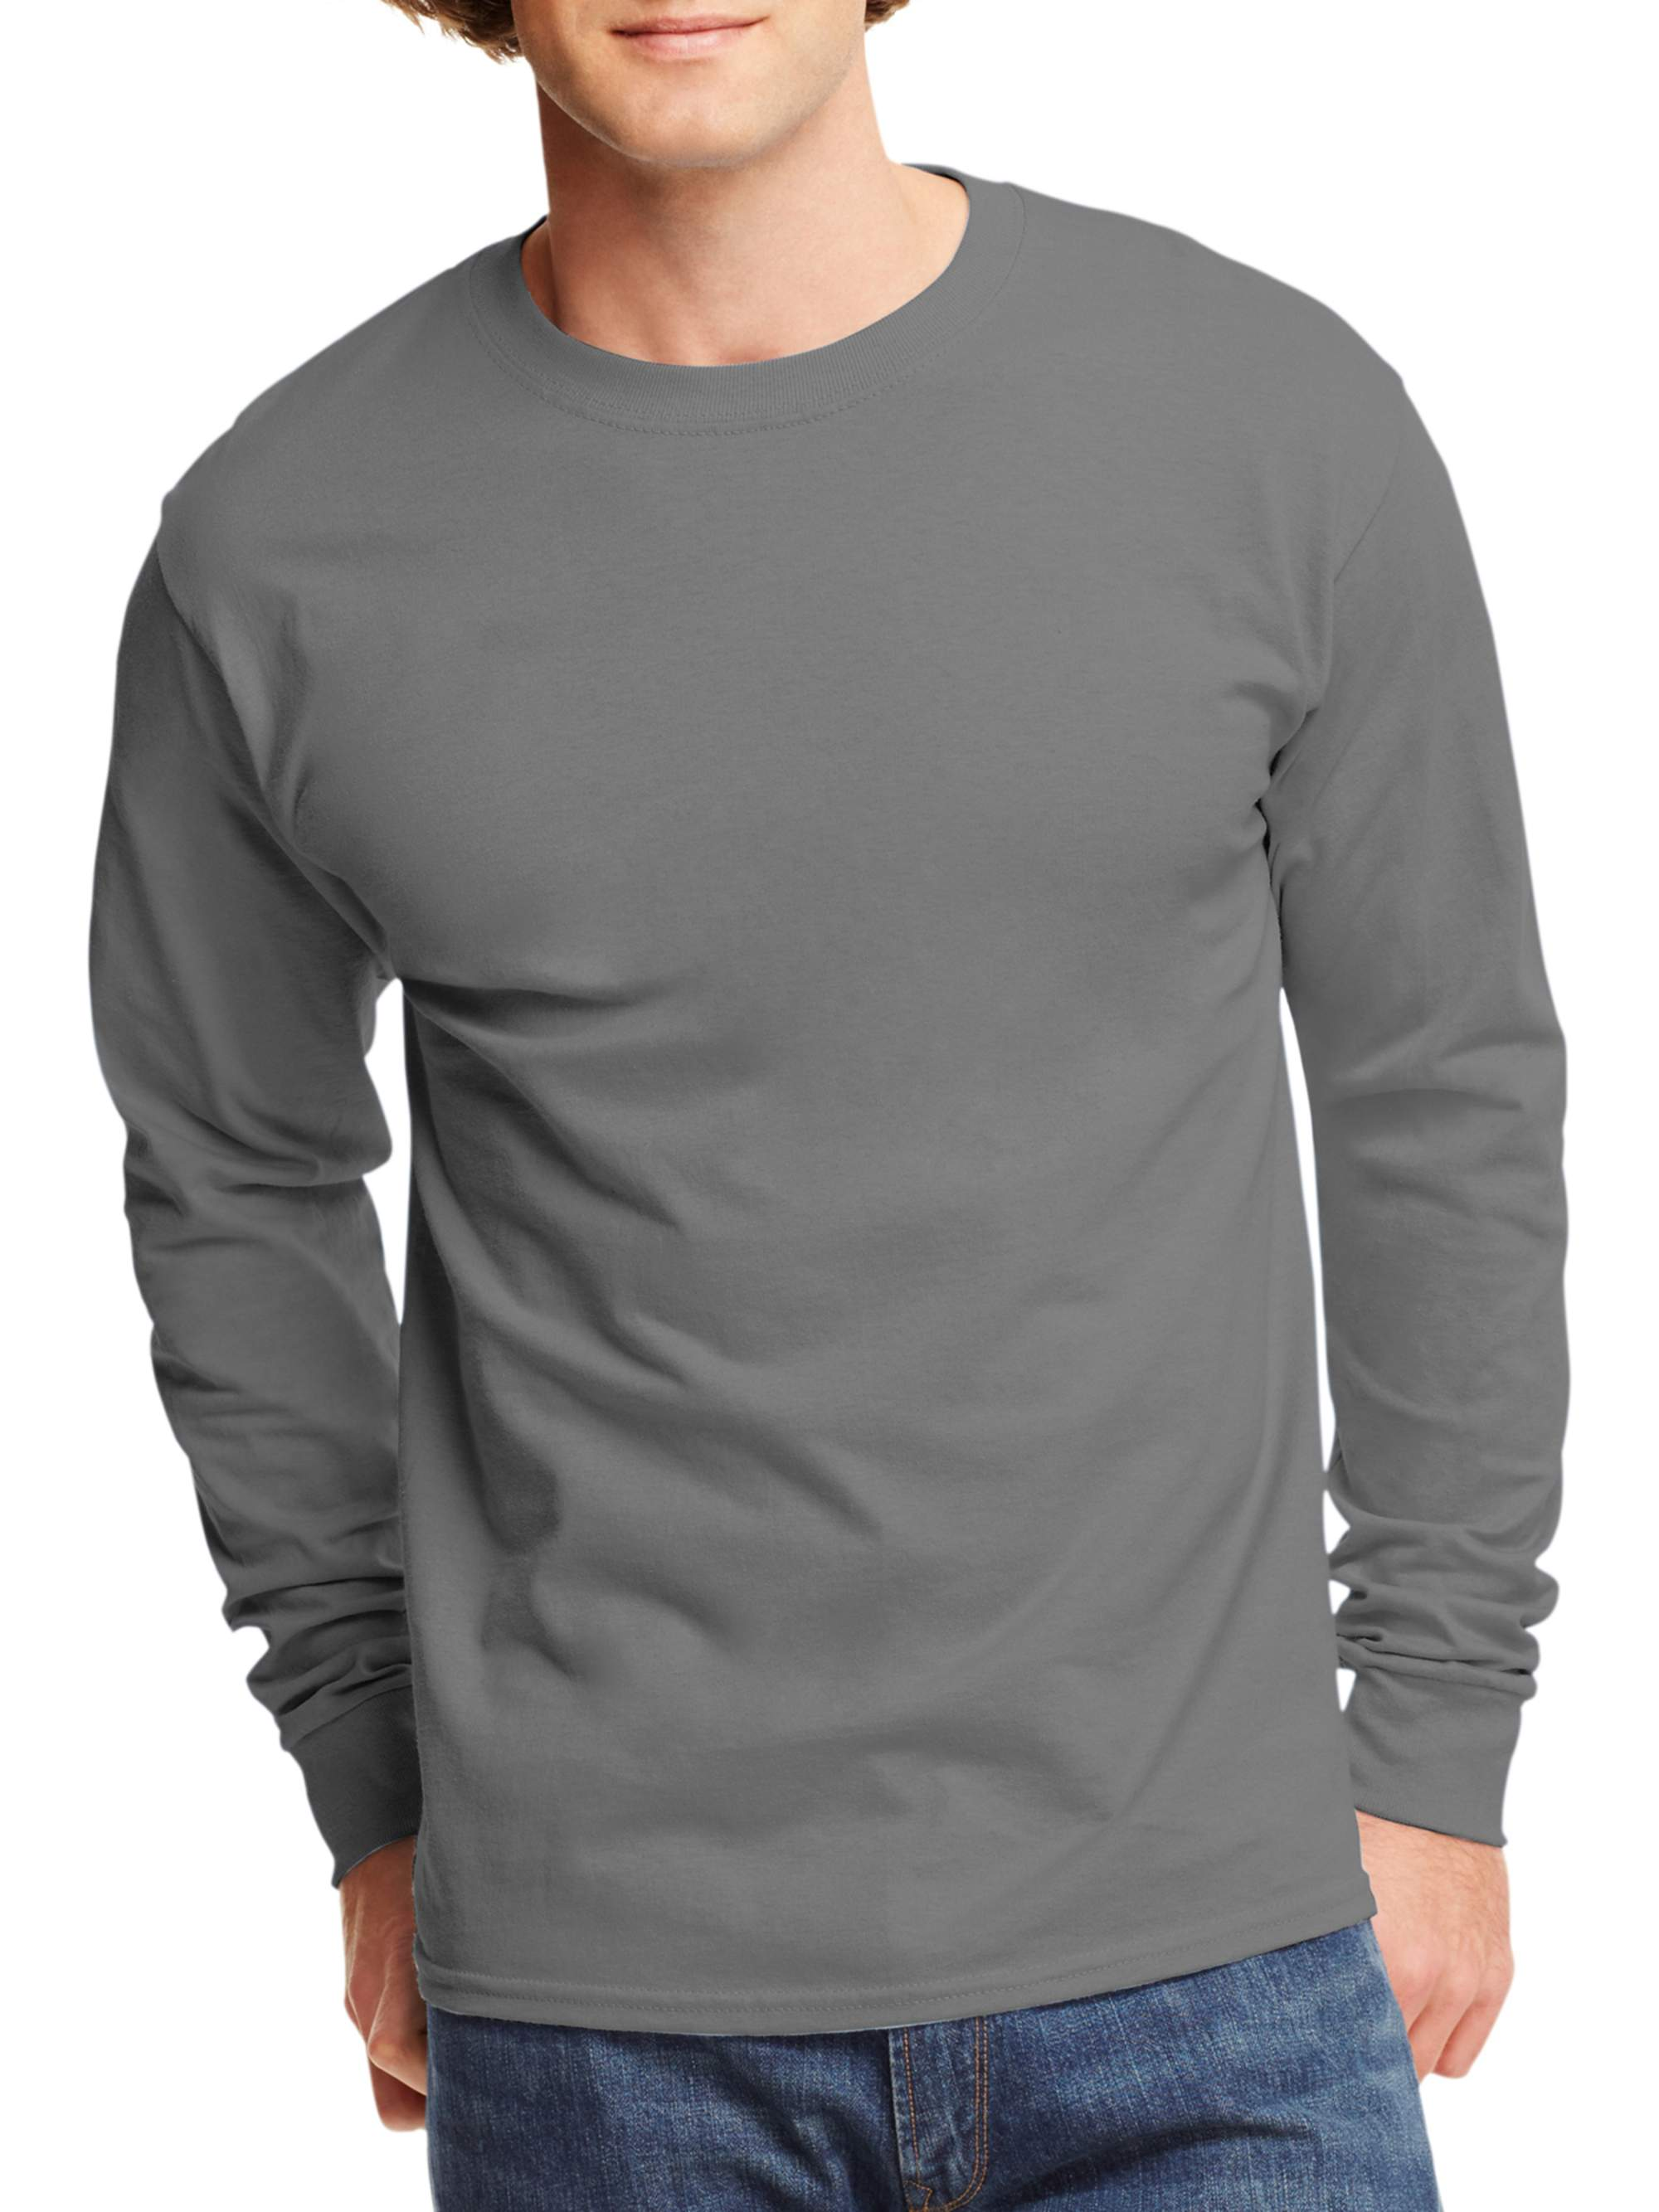 e2ca3bba4d4 Hanes - Mens Tagless Cotton Crew Neck Long-Sleeve Tshirt - Walmart.com